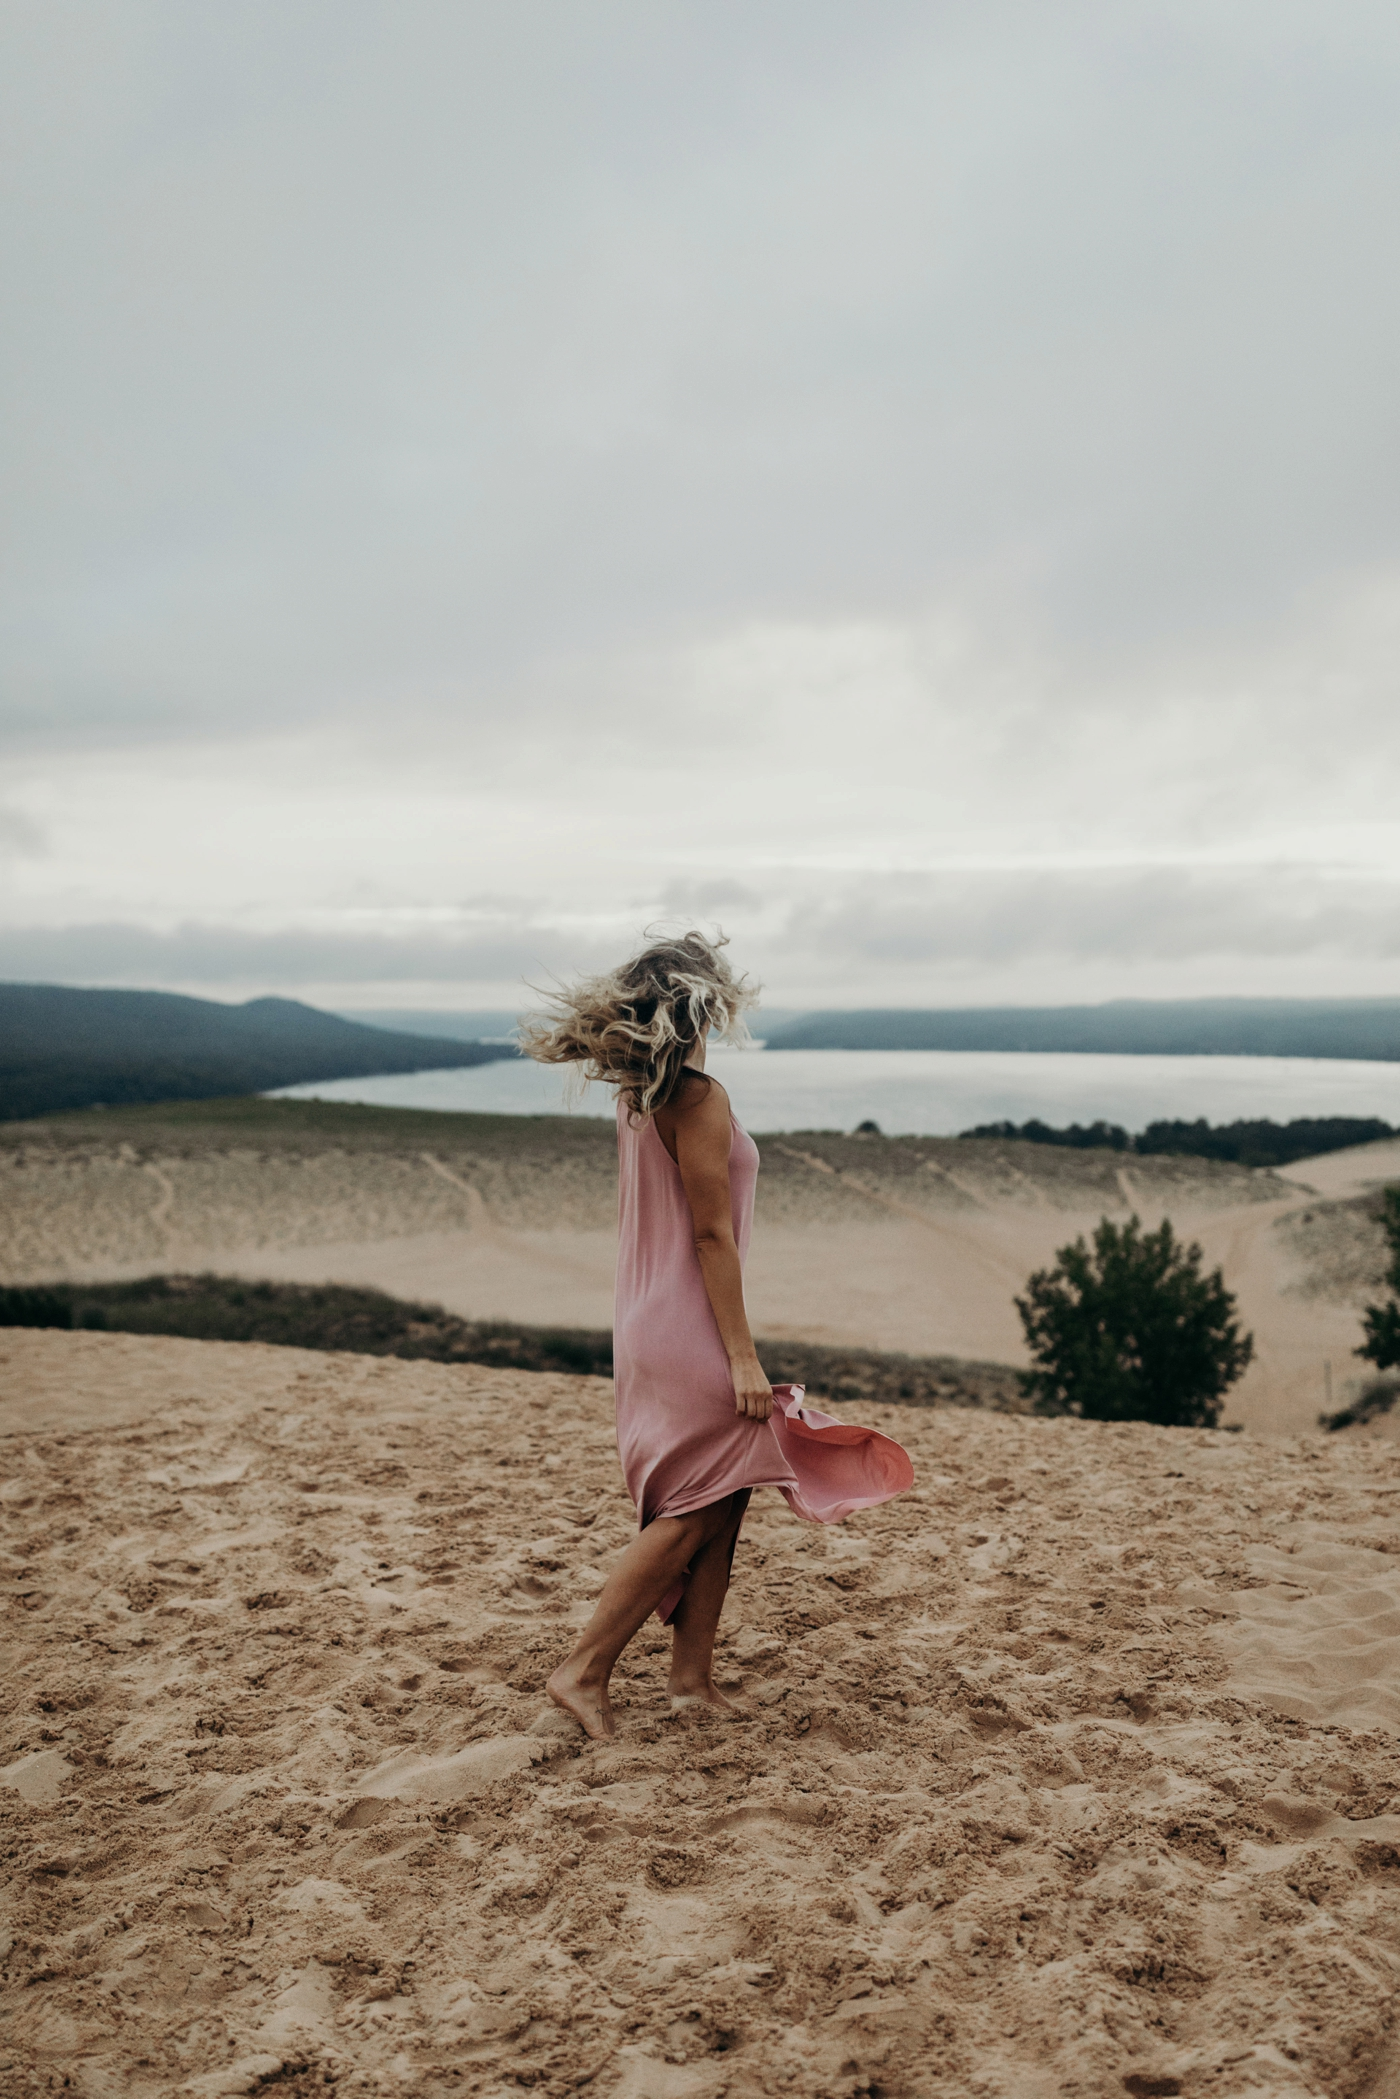 Sleeping_Bear_Dunes_Couples_Adventure_Session_Adventure_Wedding_Photographer_Hiking_with_Heels_Brett+Emily-68.jpg